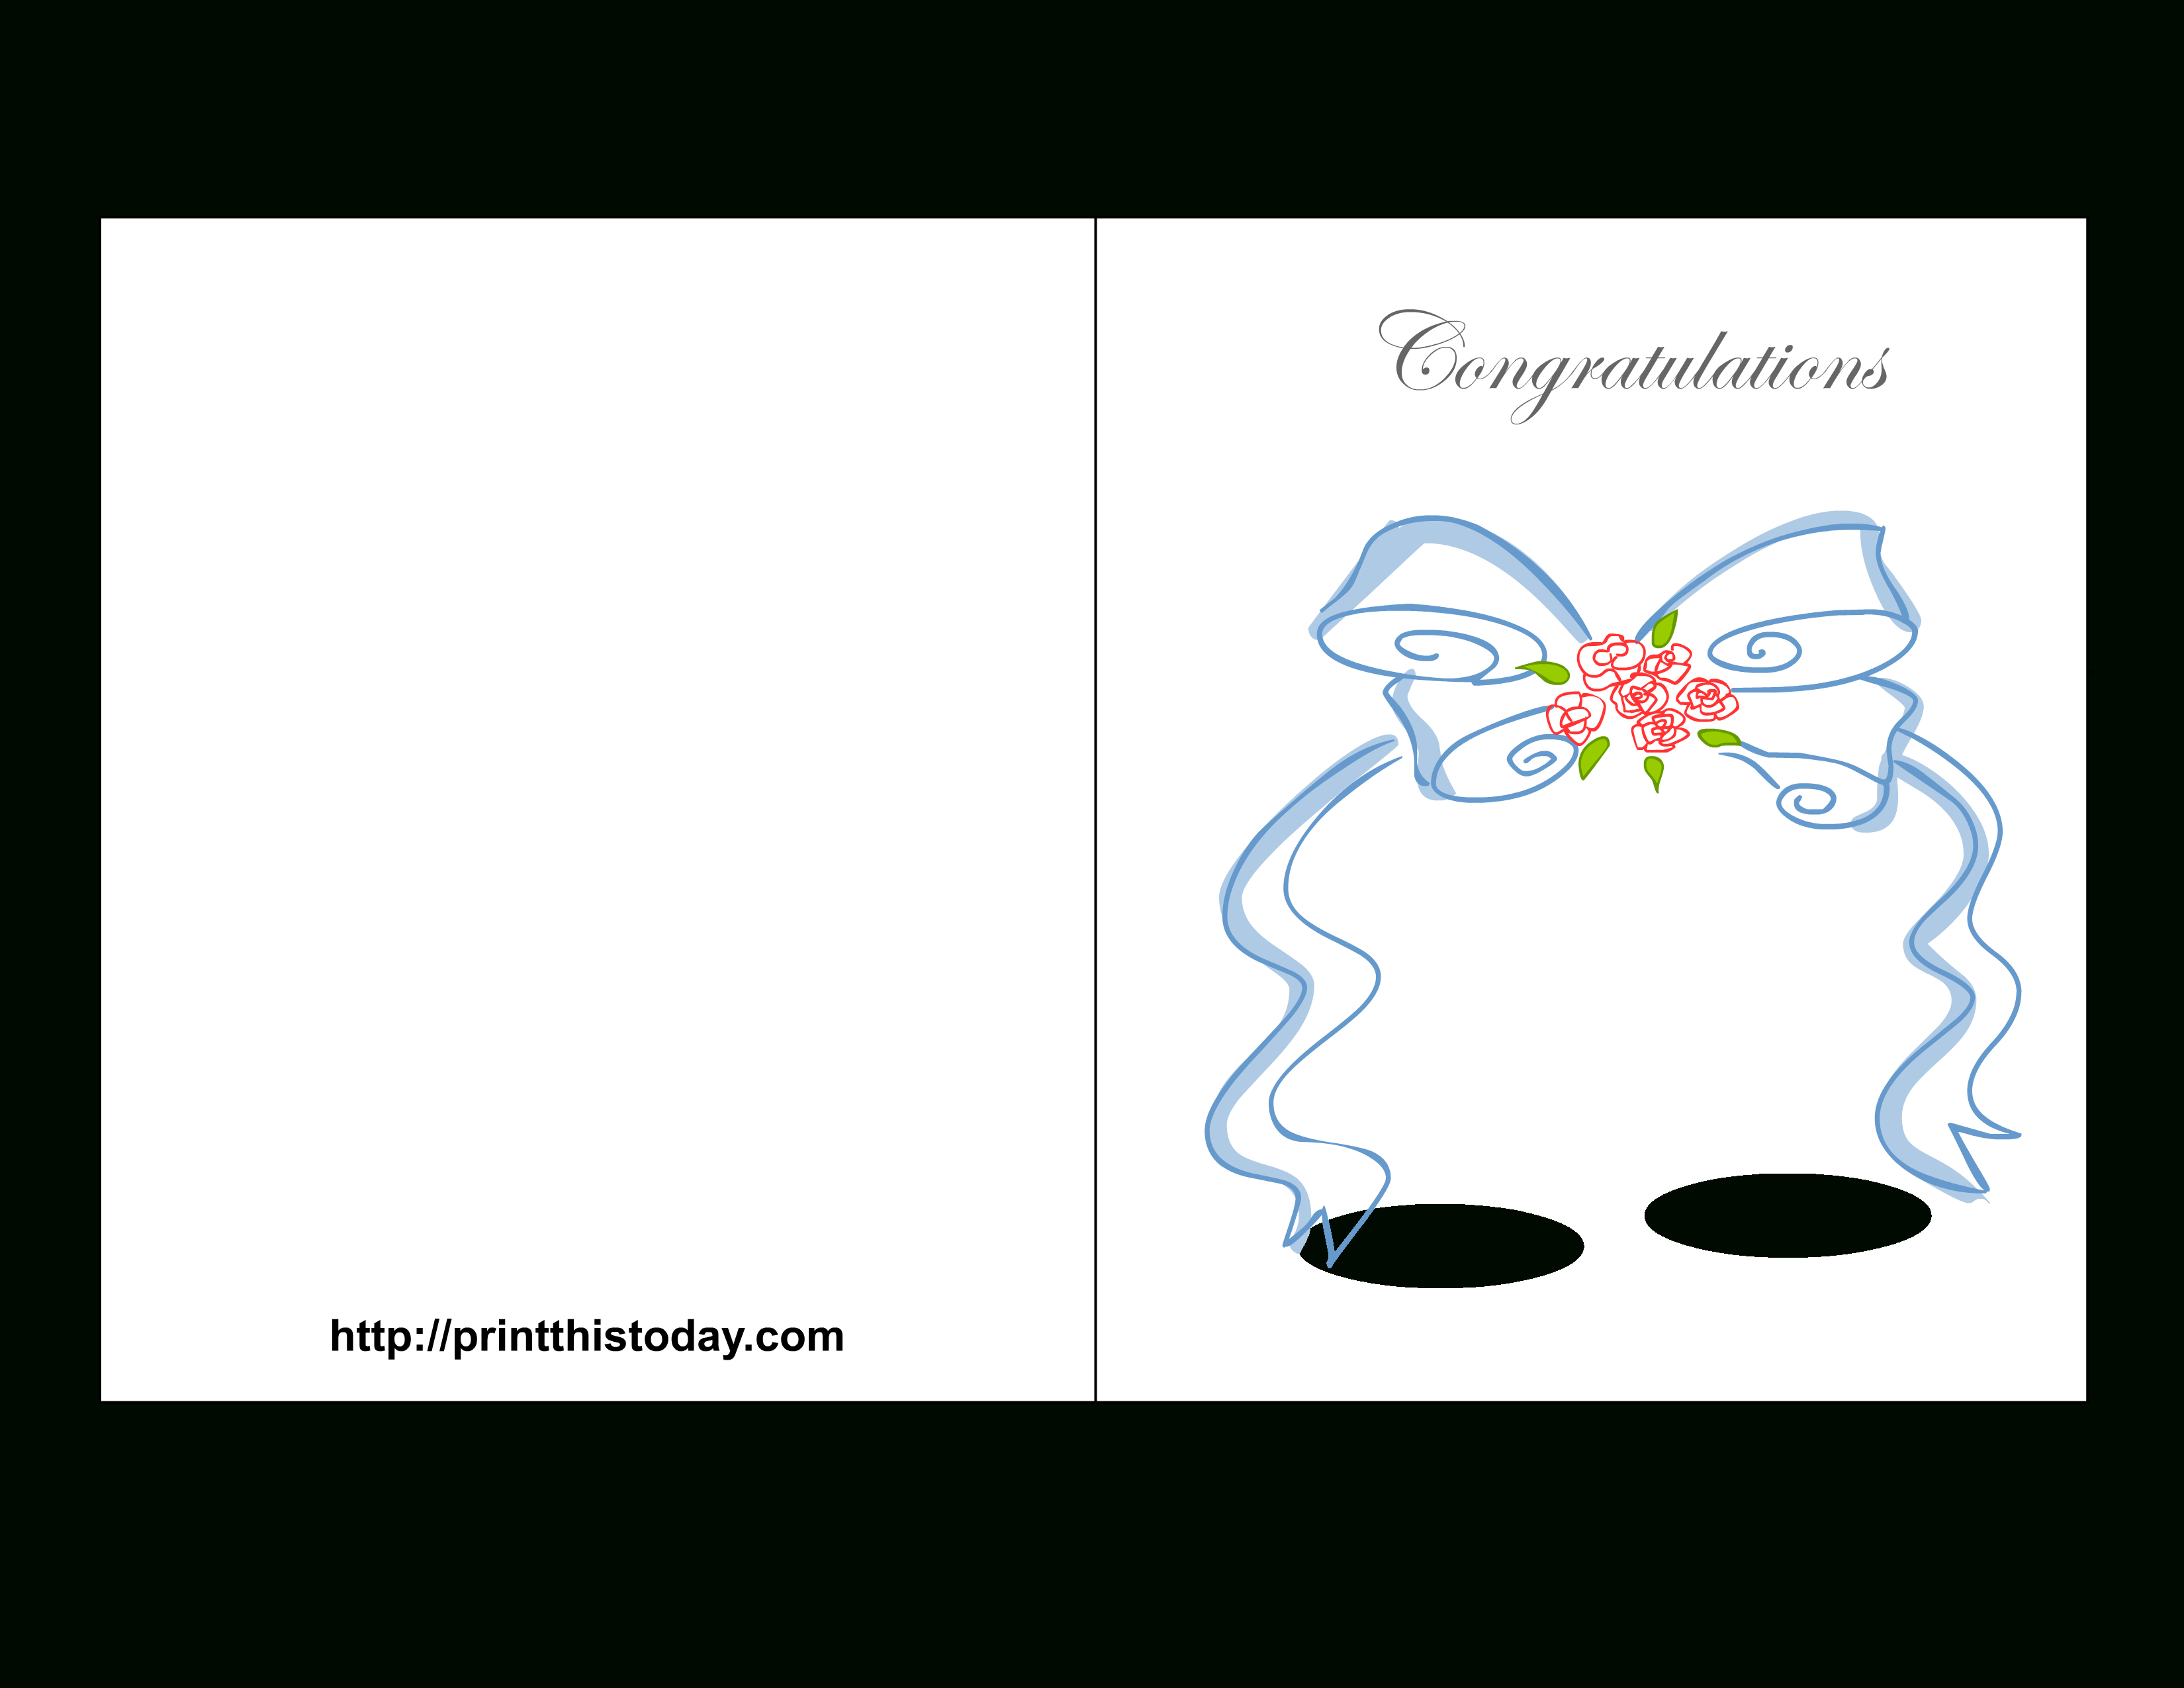 Free Printable Wedding Congratulations Cards - Free Printable Wedding Shower Greeting Cards